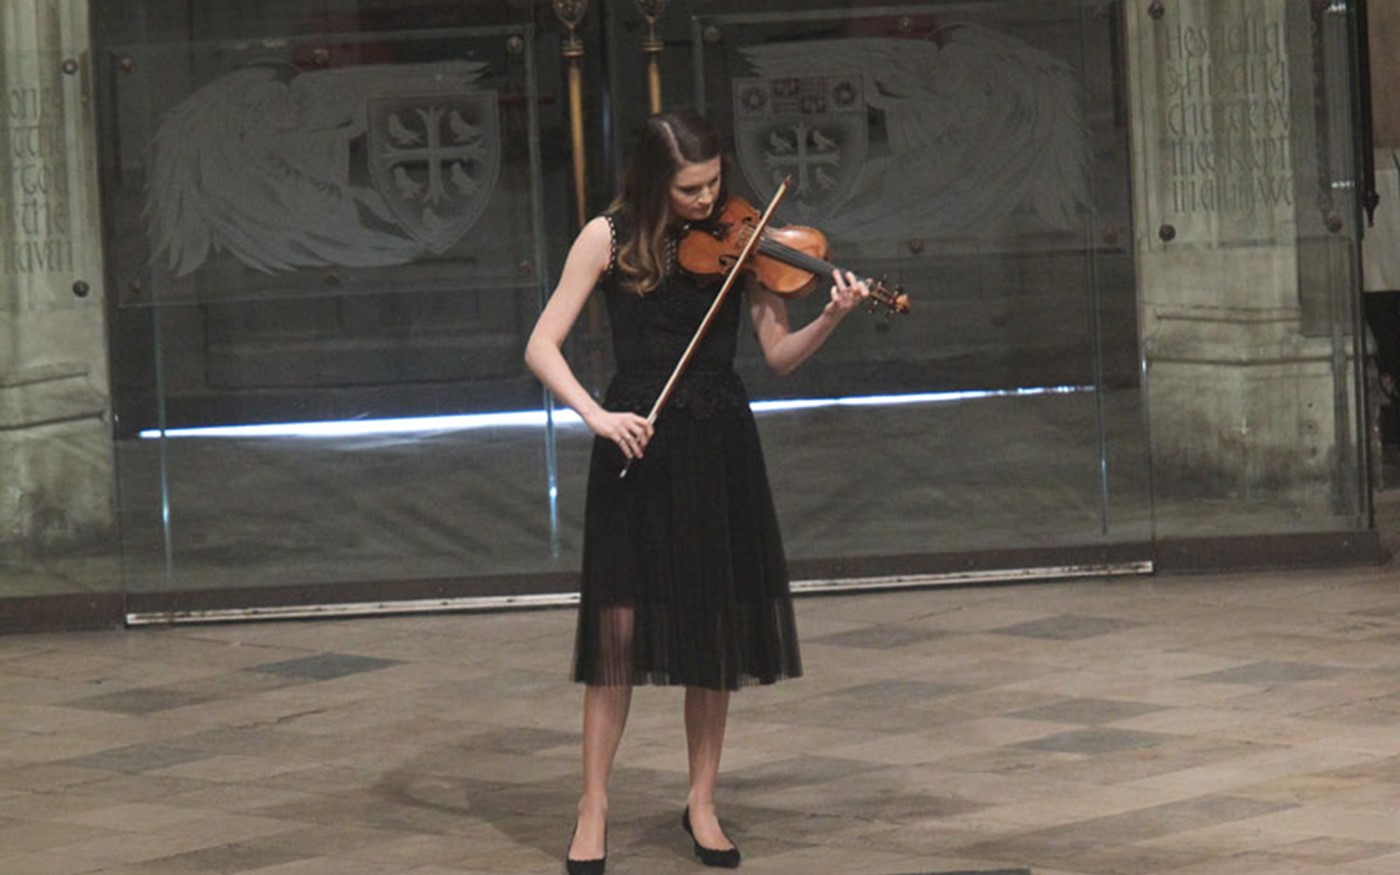 Courtenay Cleary plays Bch's Largo from Violin Sanota III in C